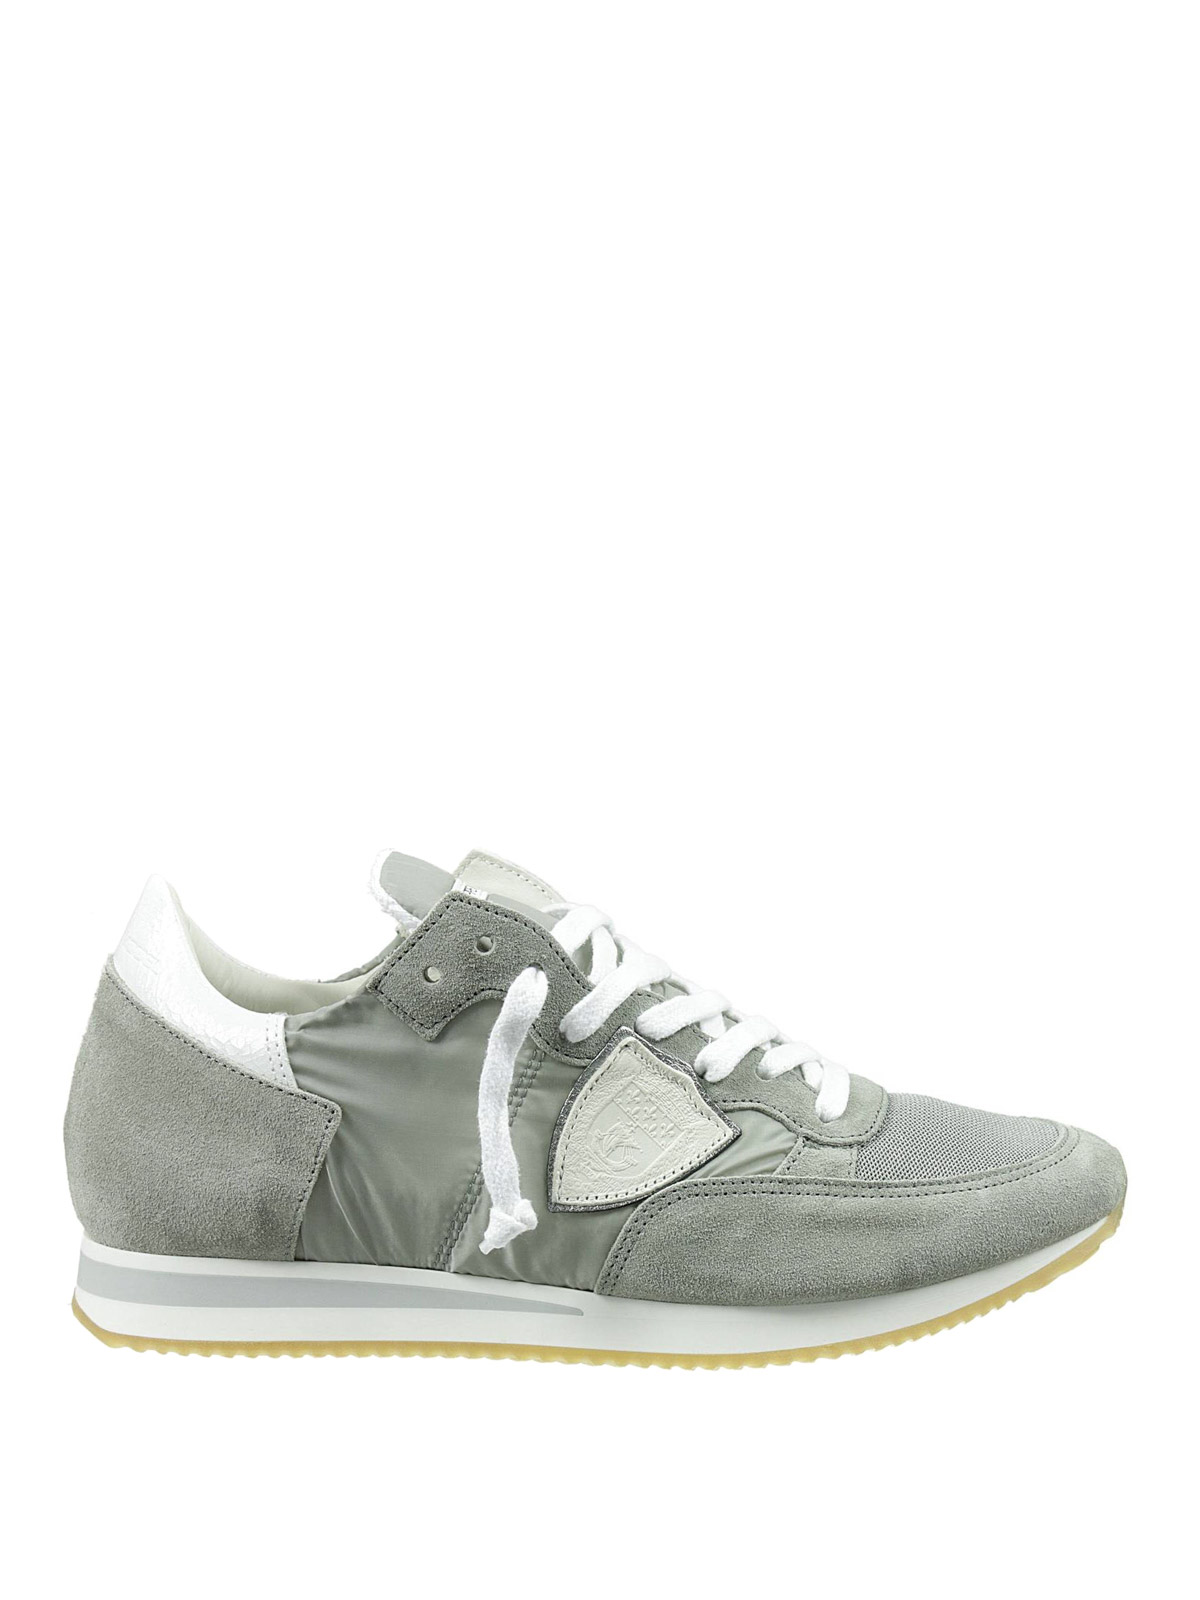 tropez running sneakers by philippe model trainers ikrix. Black Bedroom Furniture Sets. Home Design Ideas